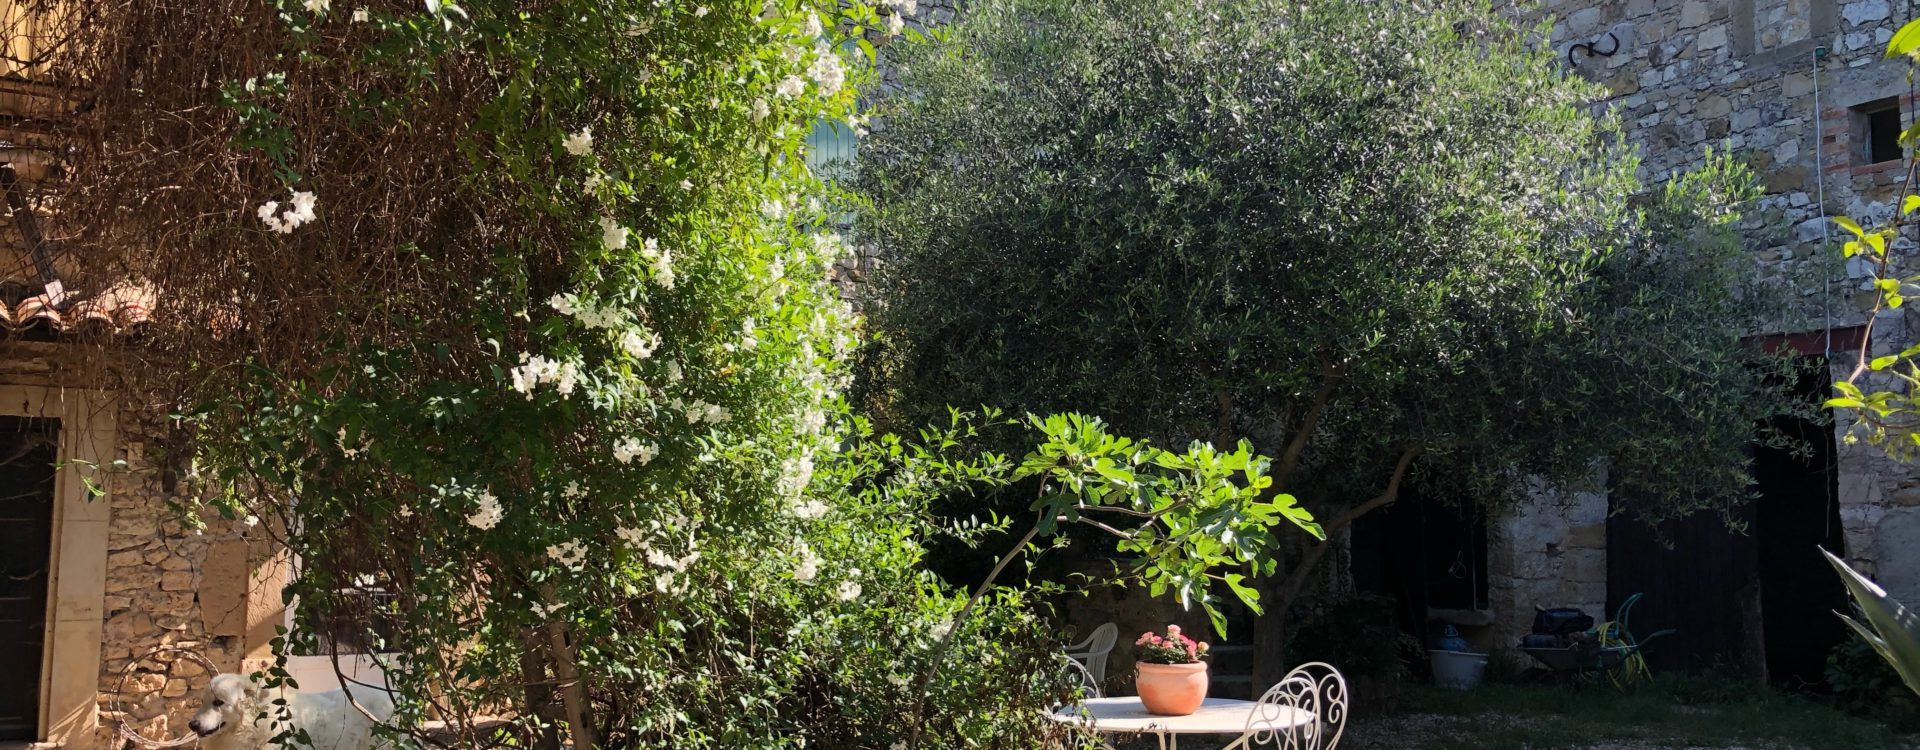 19th century farmhouse in Uzès. Over 246m² of living space in an idyllic environment